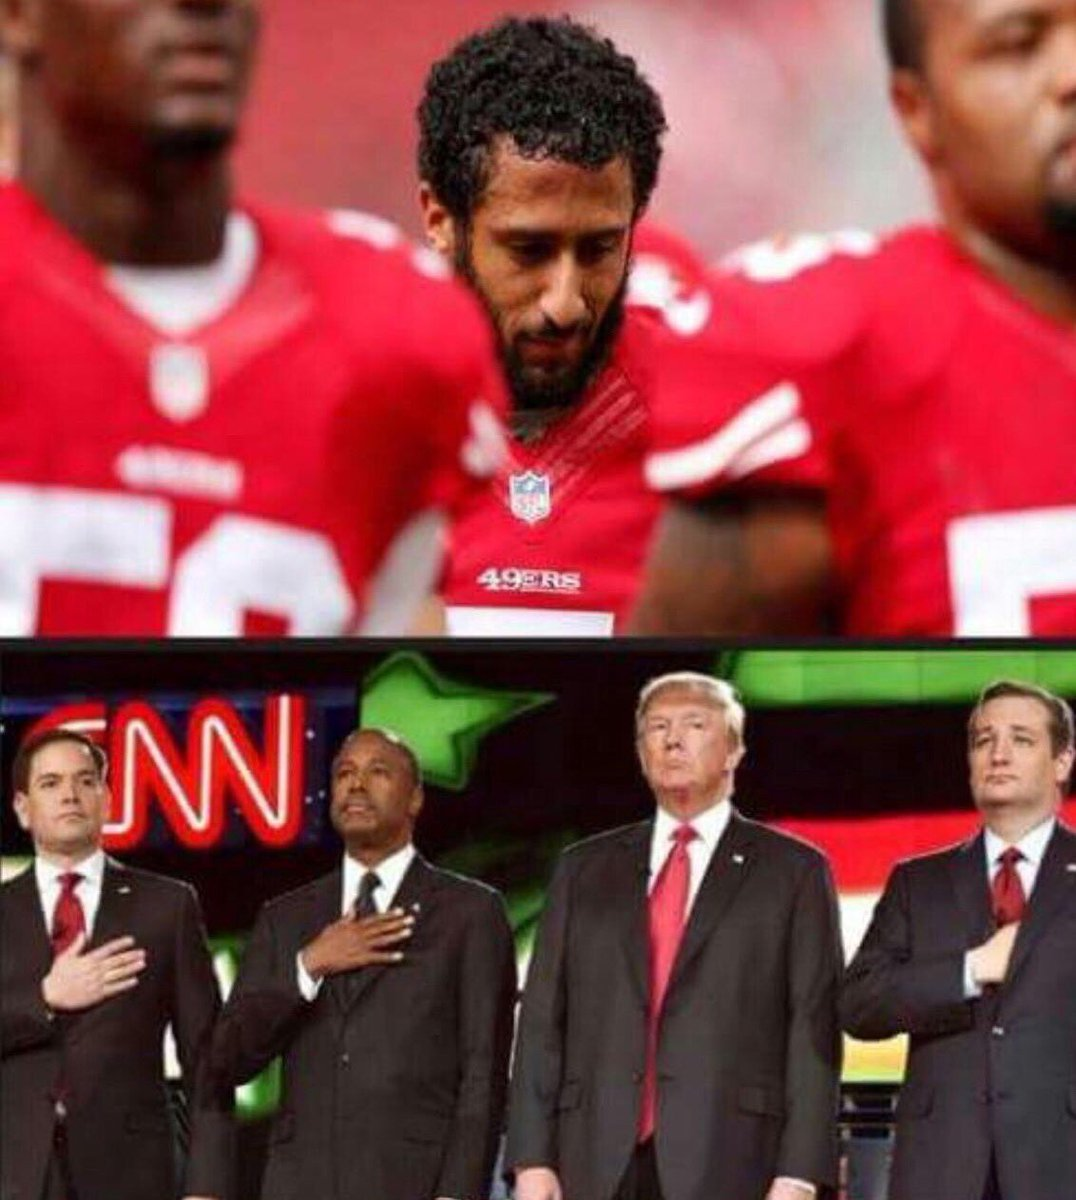 U know we're in trouble when ppl care more about a QB than a prez candidate not saluting the #nationalanthem. https://t.co/Ousdts8xm3